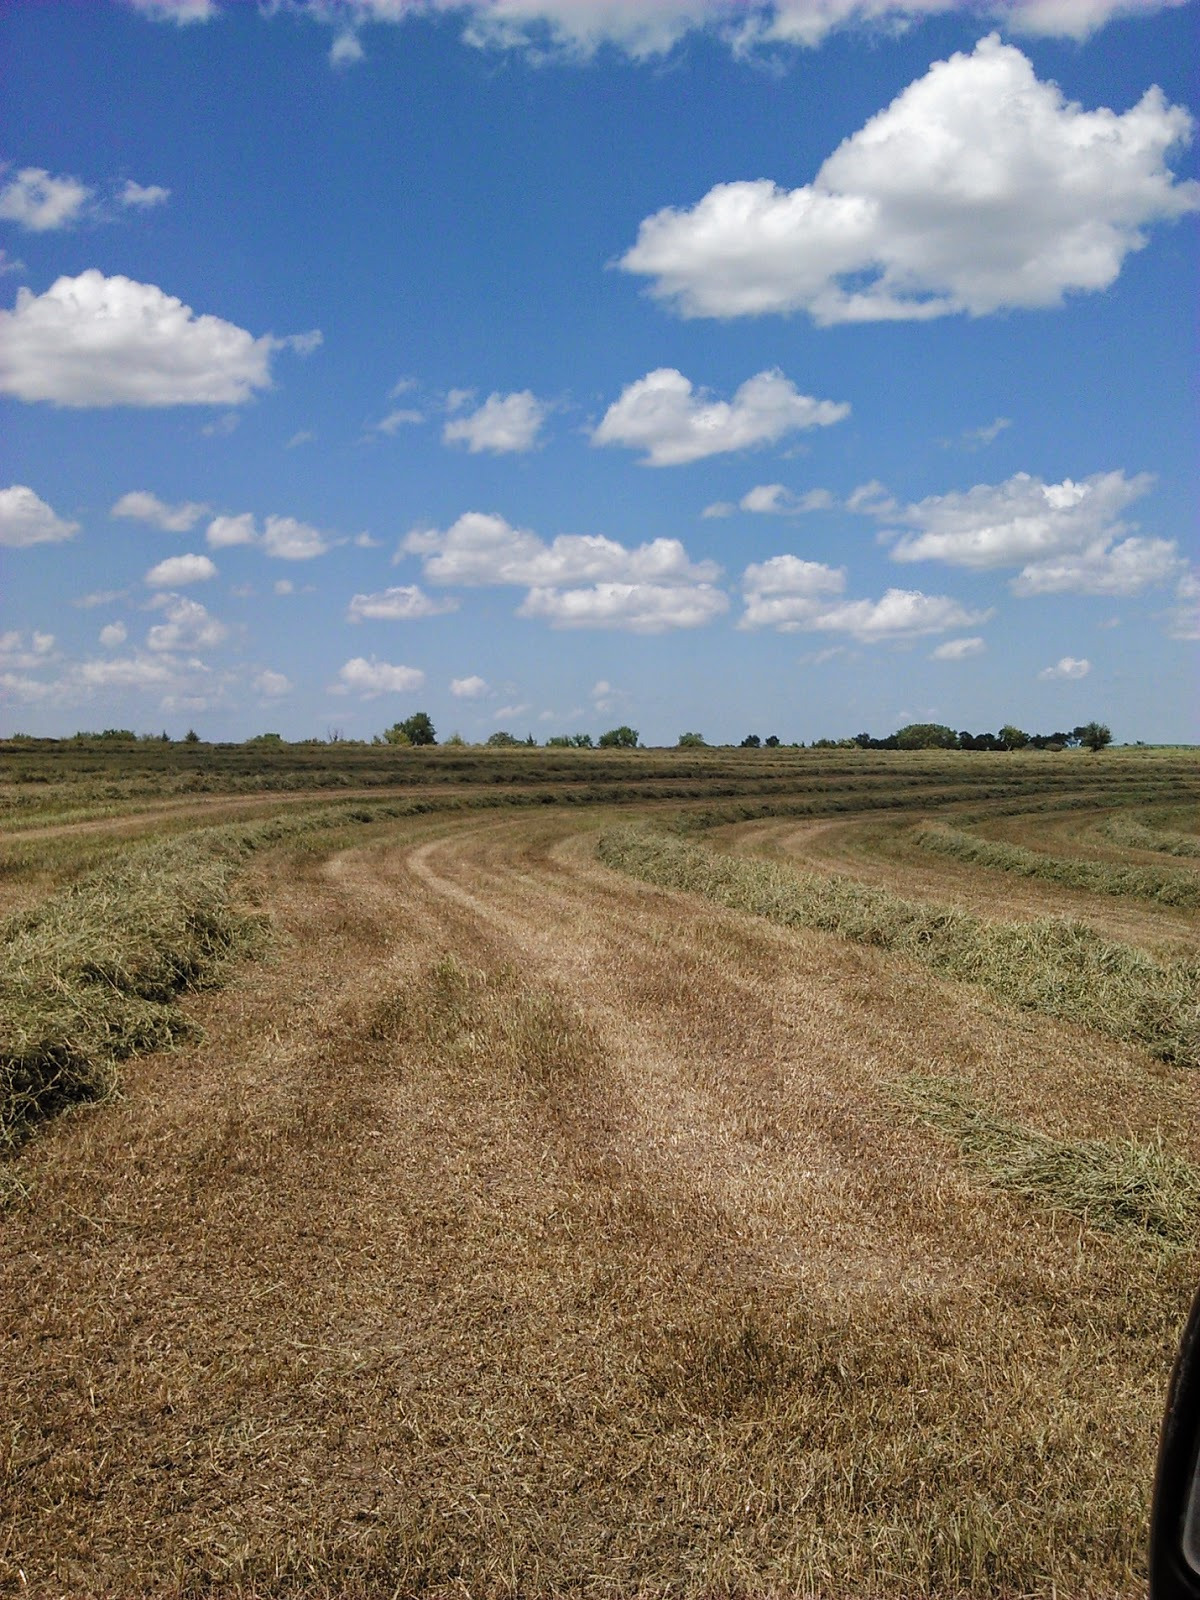 A field of one form of cellulose - grass hay - that has been mowed and will be baled soon